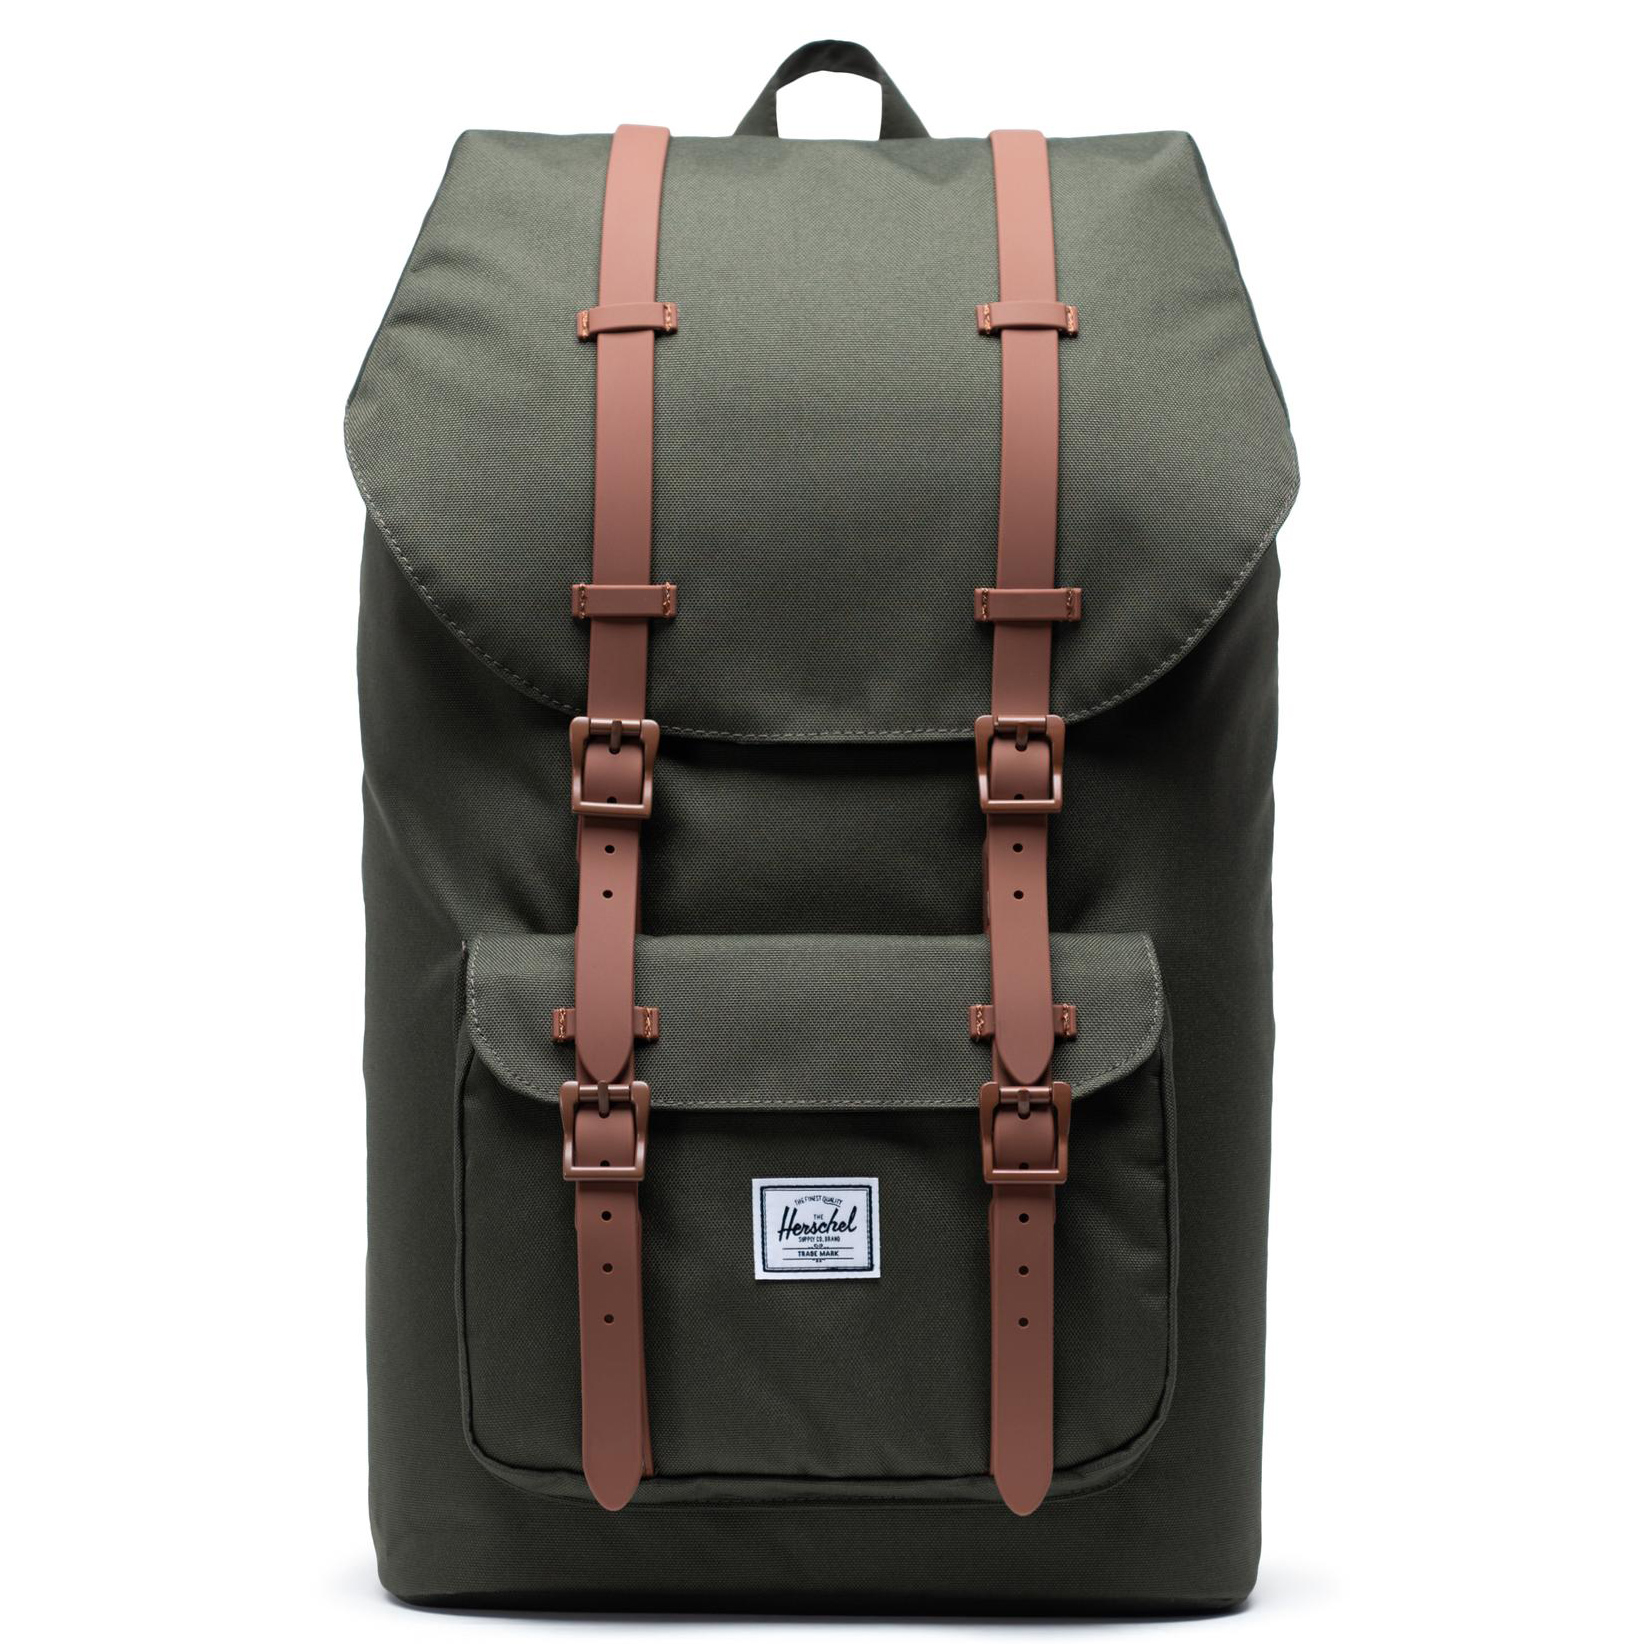 Herschel Little America Rugzak Dark Olive Saddle Brown